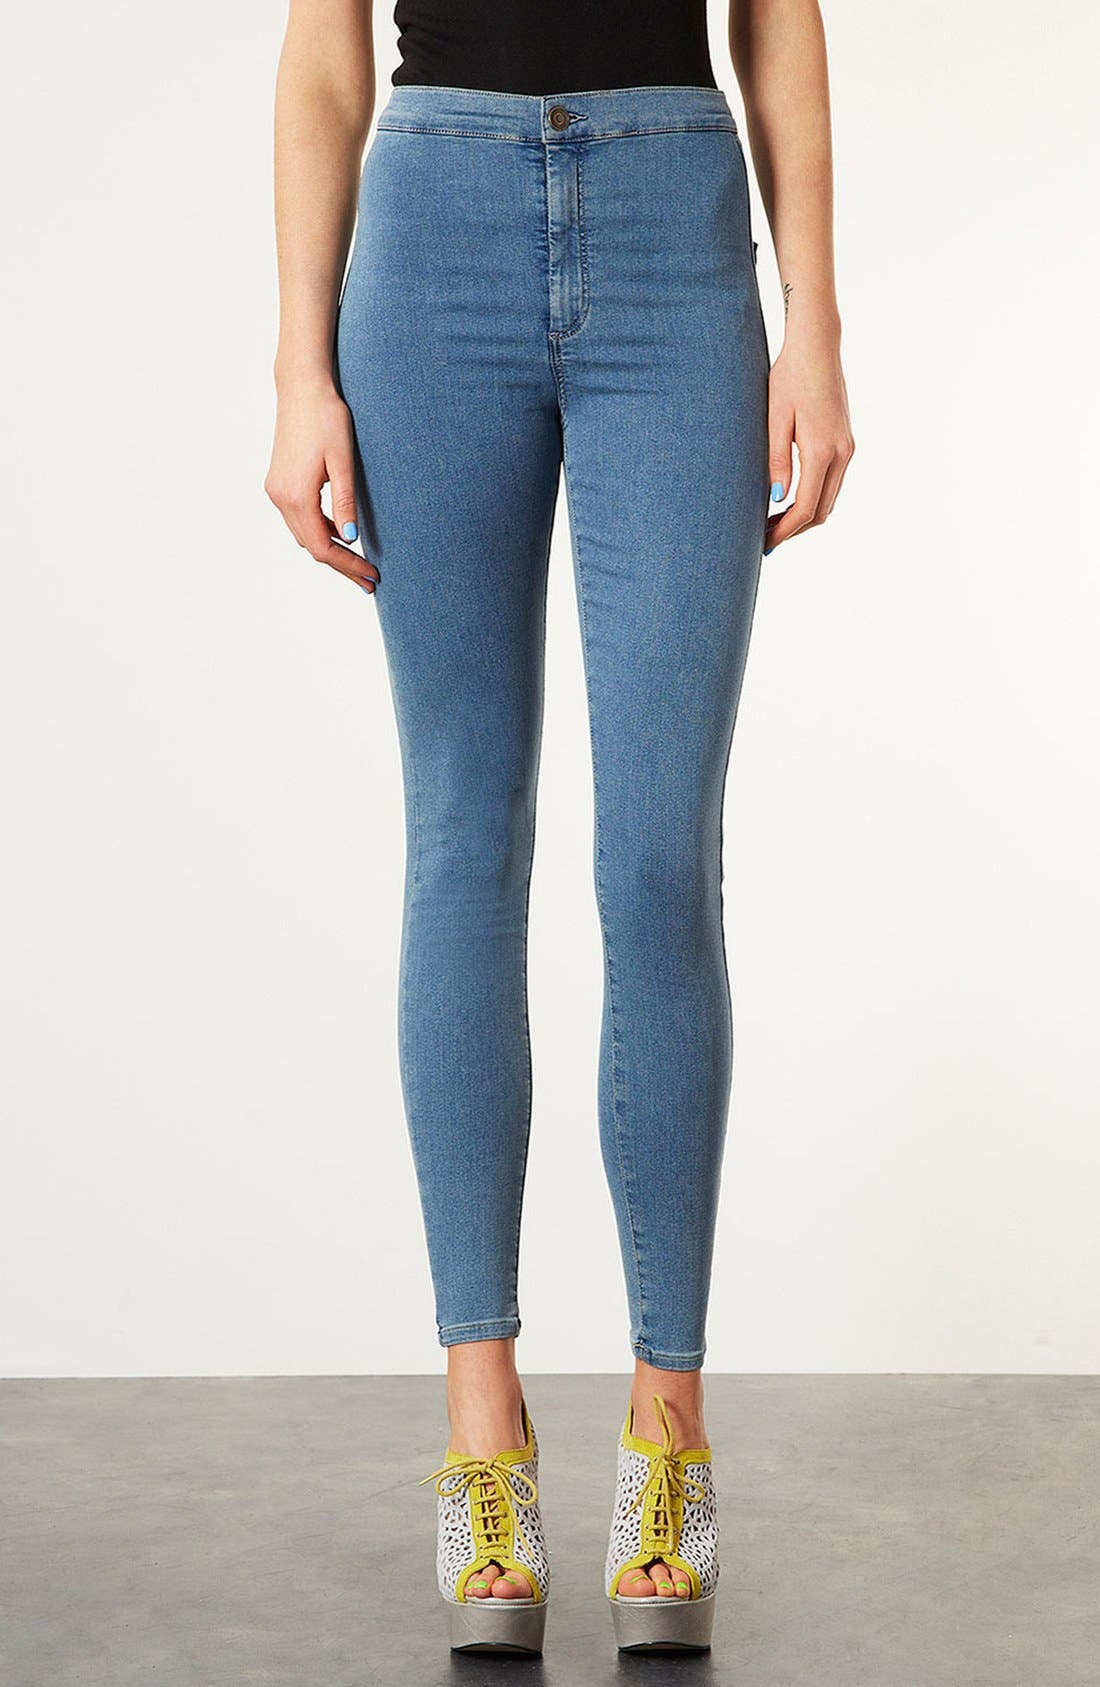 Alternate Image 1 Selected - Topshop Moto 'Vintage Joni' High Rise Skinny Crop Jeans (Mid Stone)